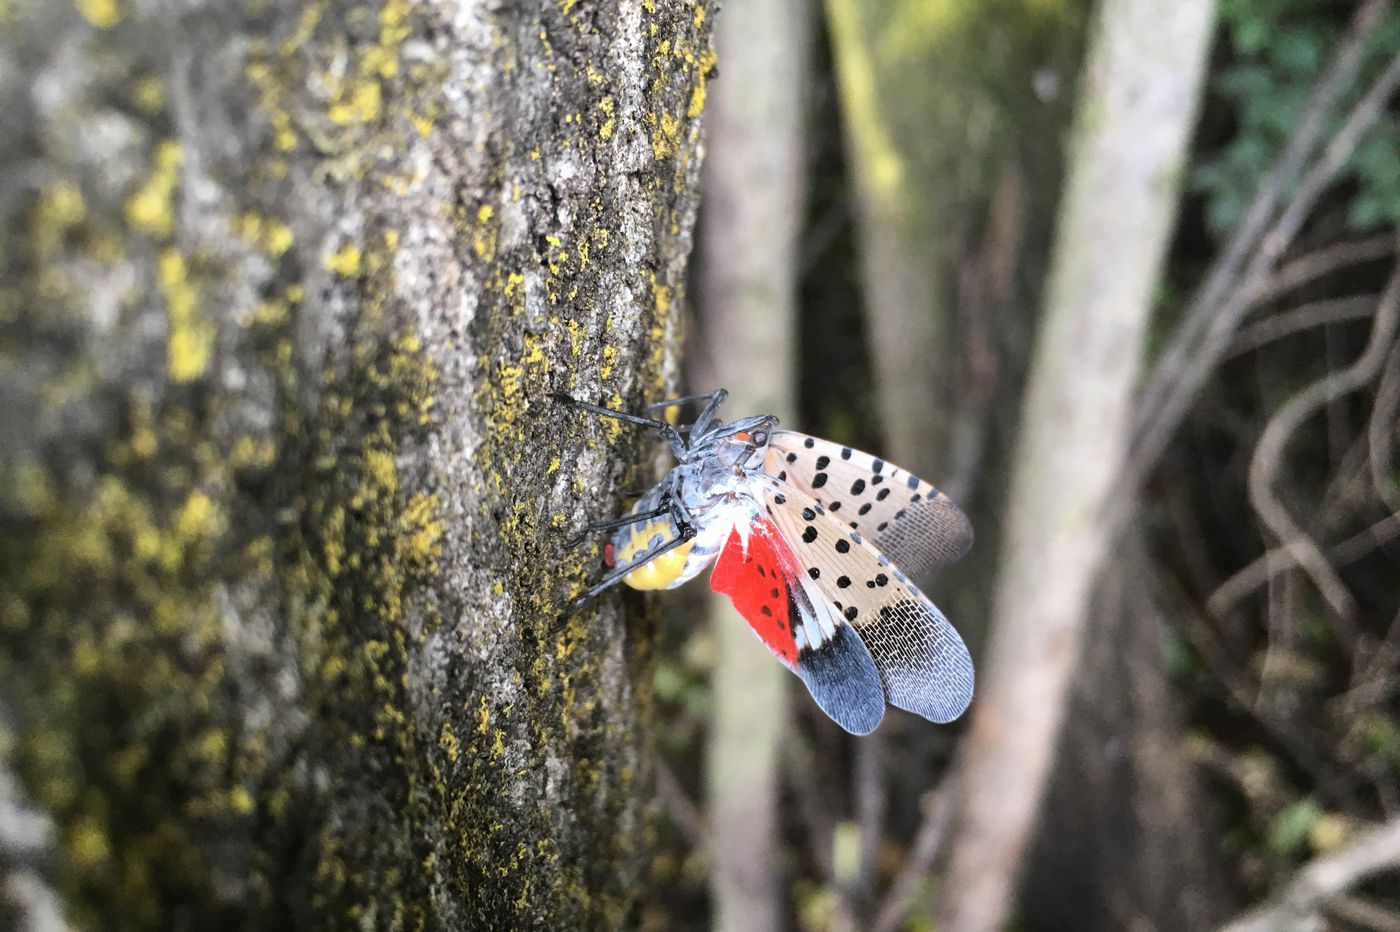 Spotted lanternfly invasion prompts a horror film, Halloween inspiration, and carnage in Philly